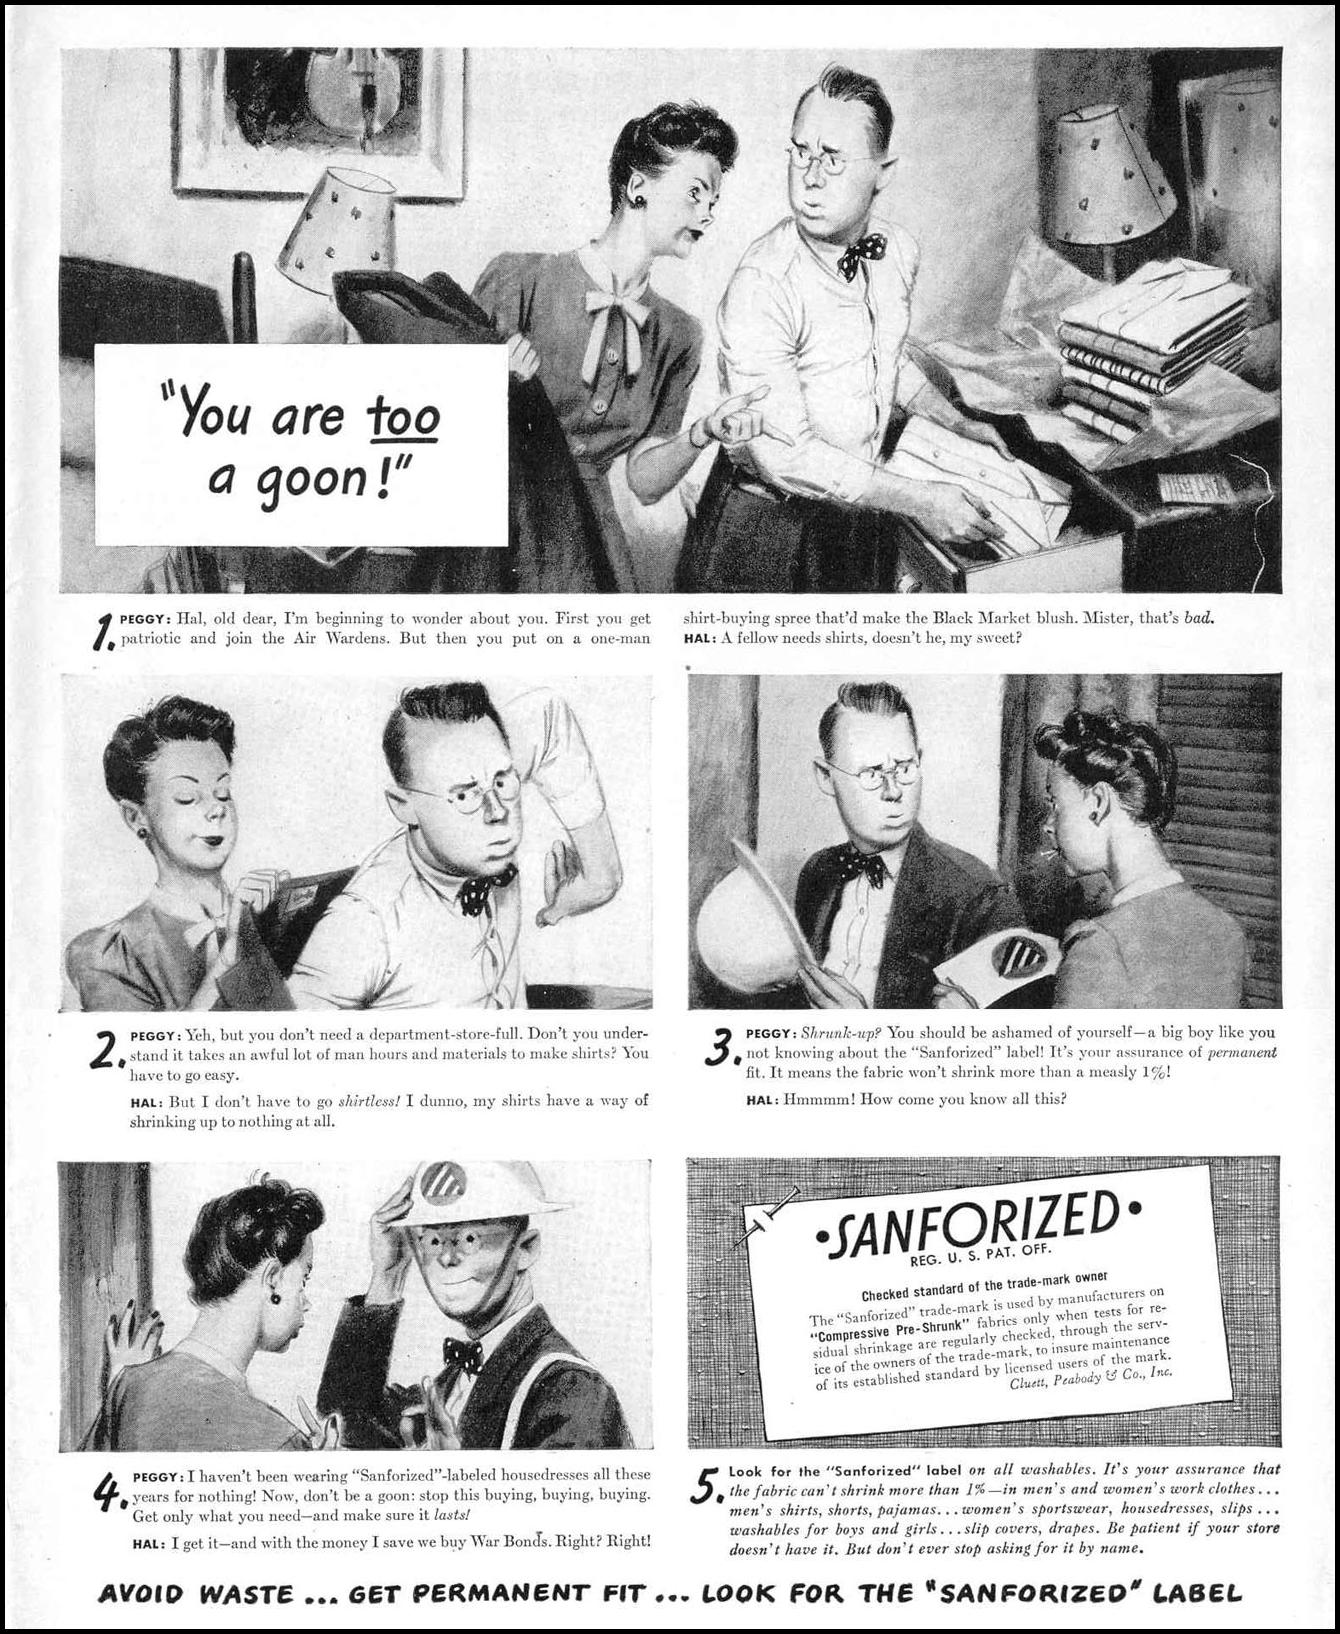 SANFORIZED PRE-SHRUNK FABRIC LIFE 11/01/1943 p. 1